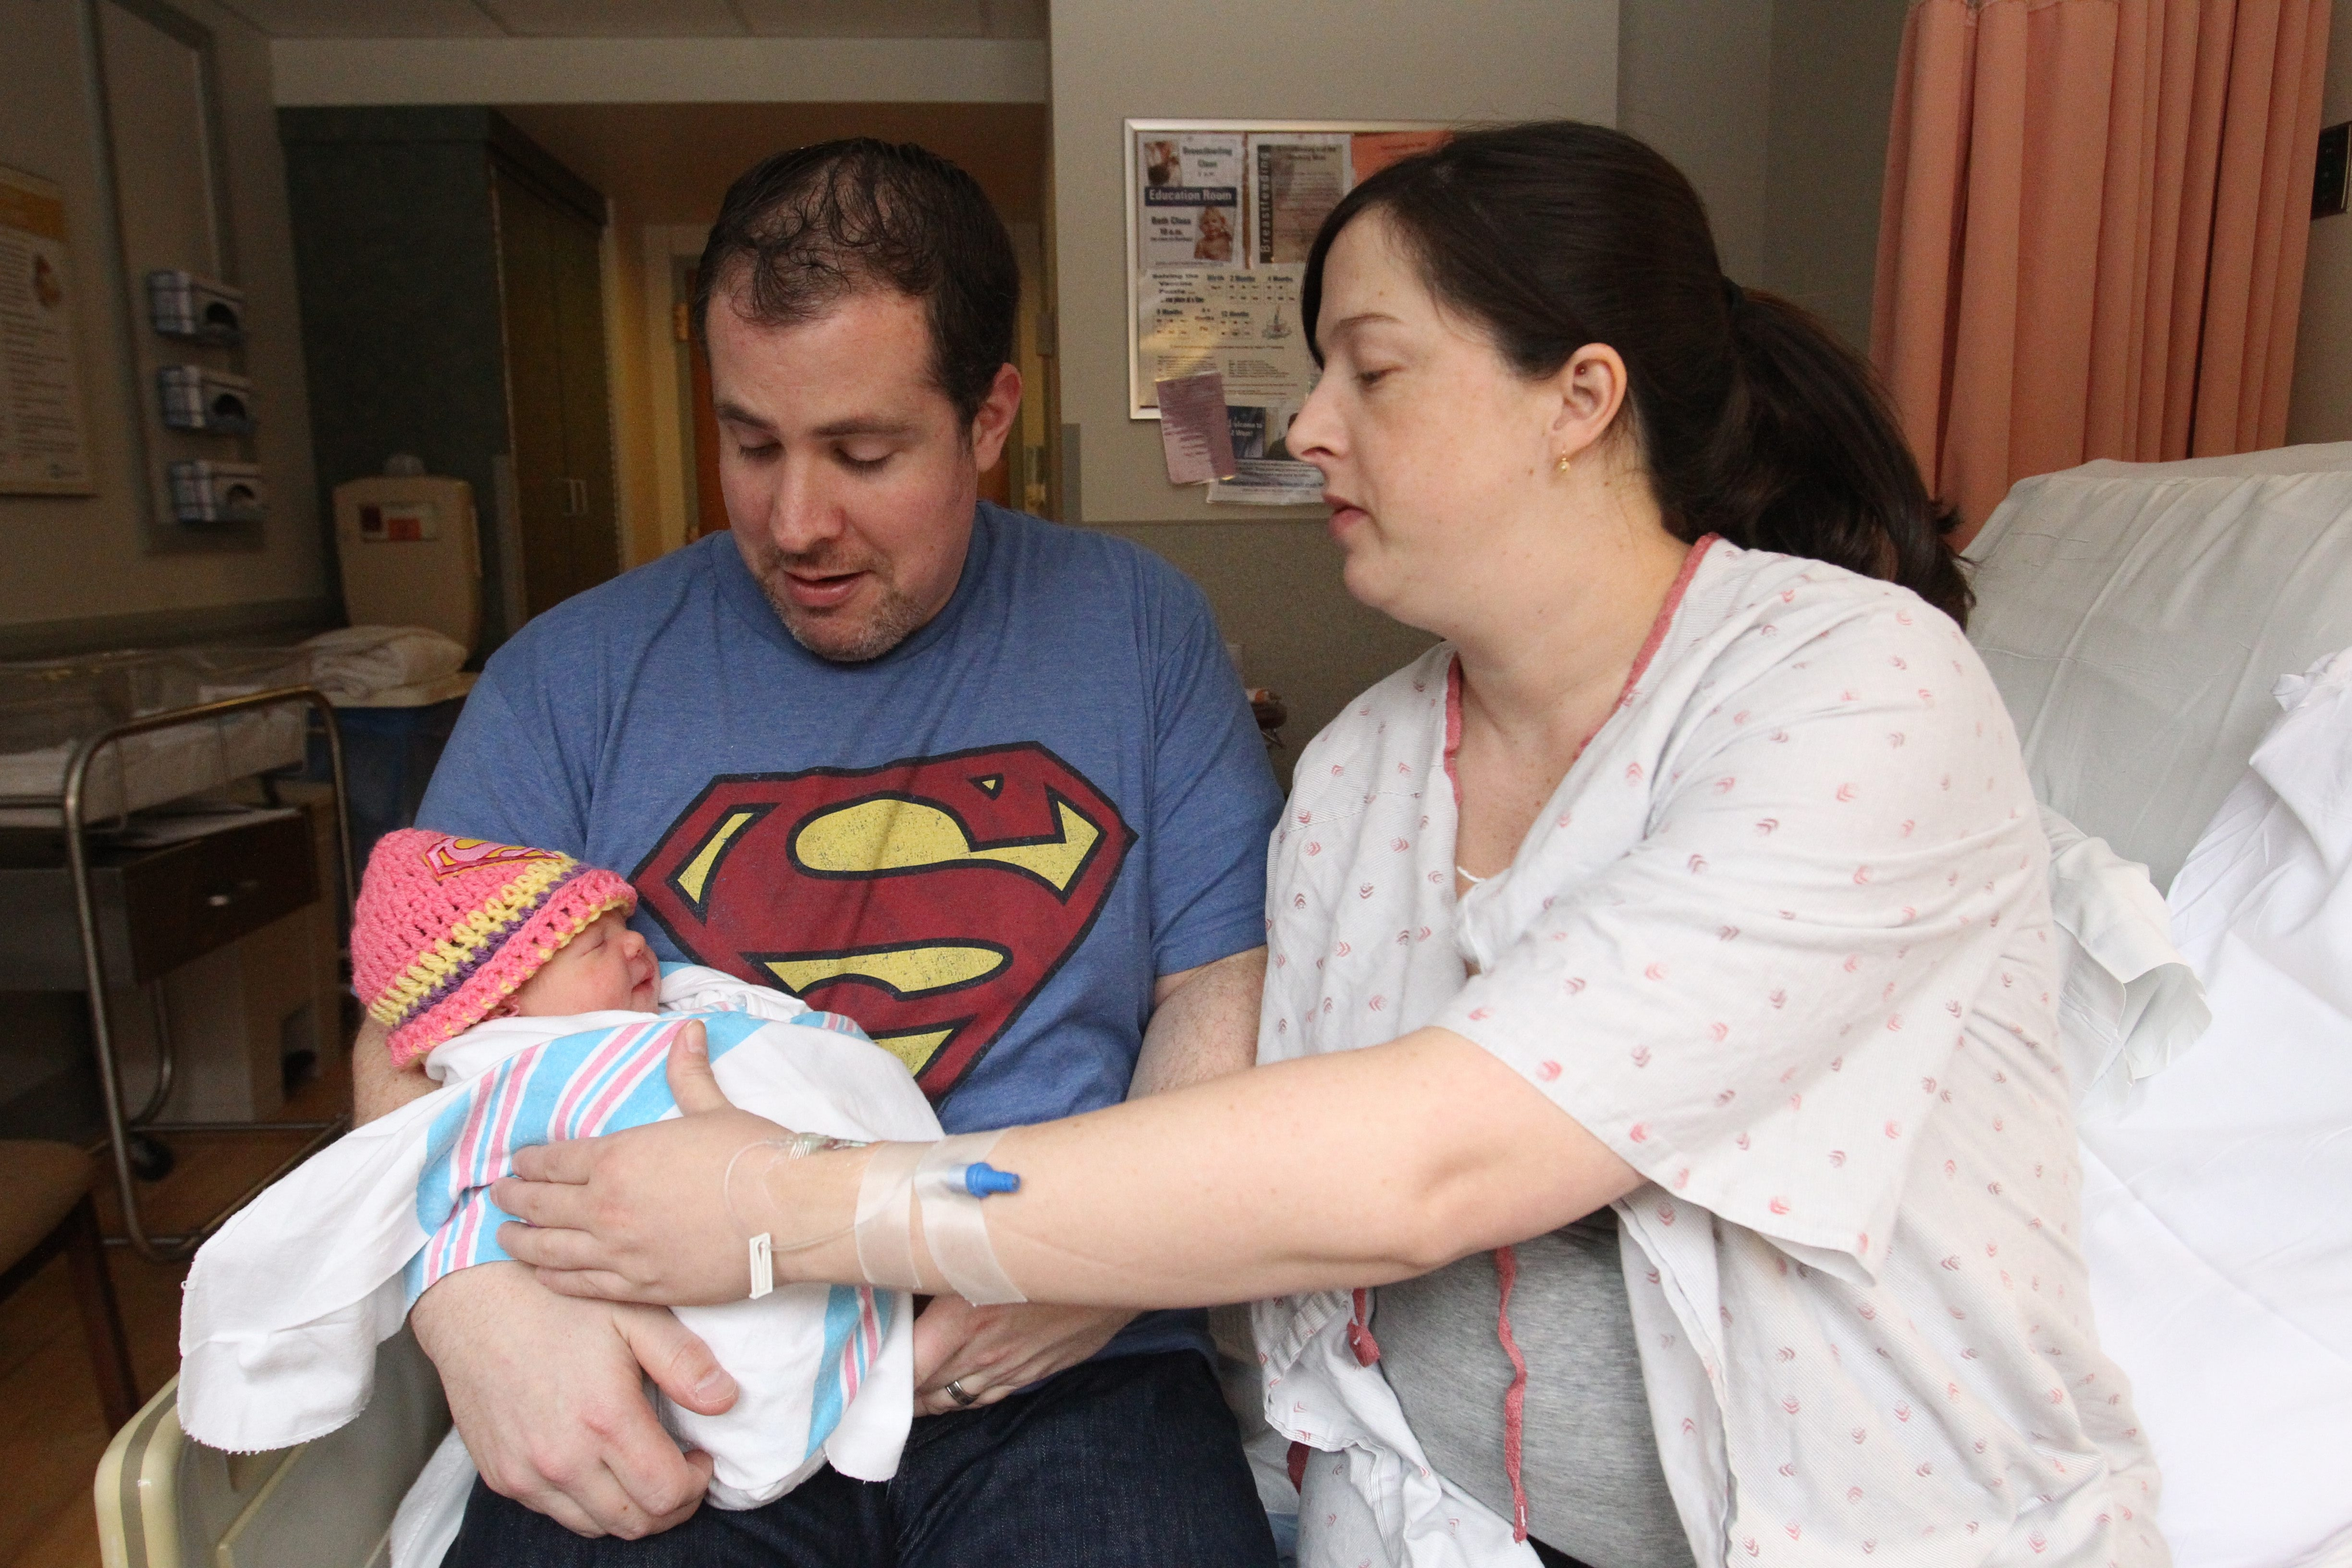 Chuck Amadori and his wife, Tracy, of Grand Island admire their new daughter, Lilliana Rose, born at 12:56 a.m. Wednesday in Millard Fillmore Suburban Hospital.